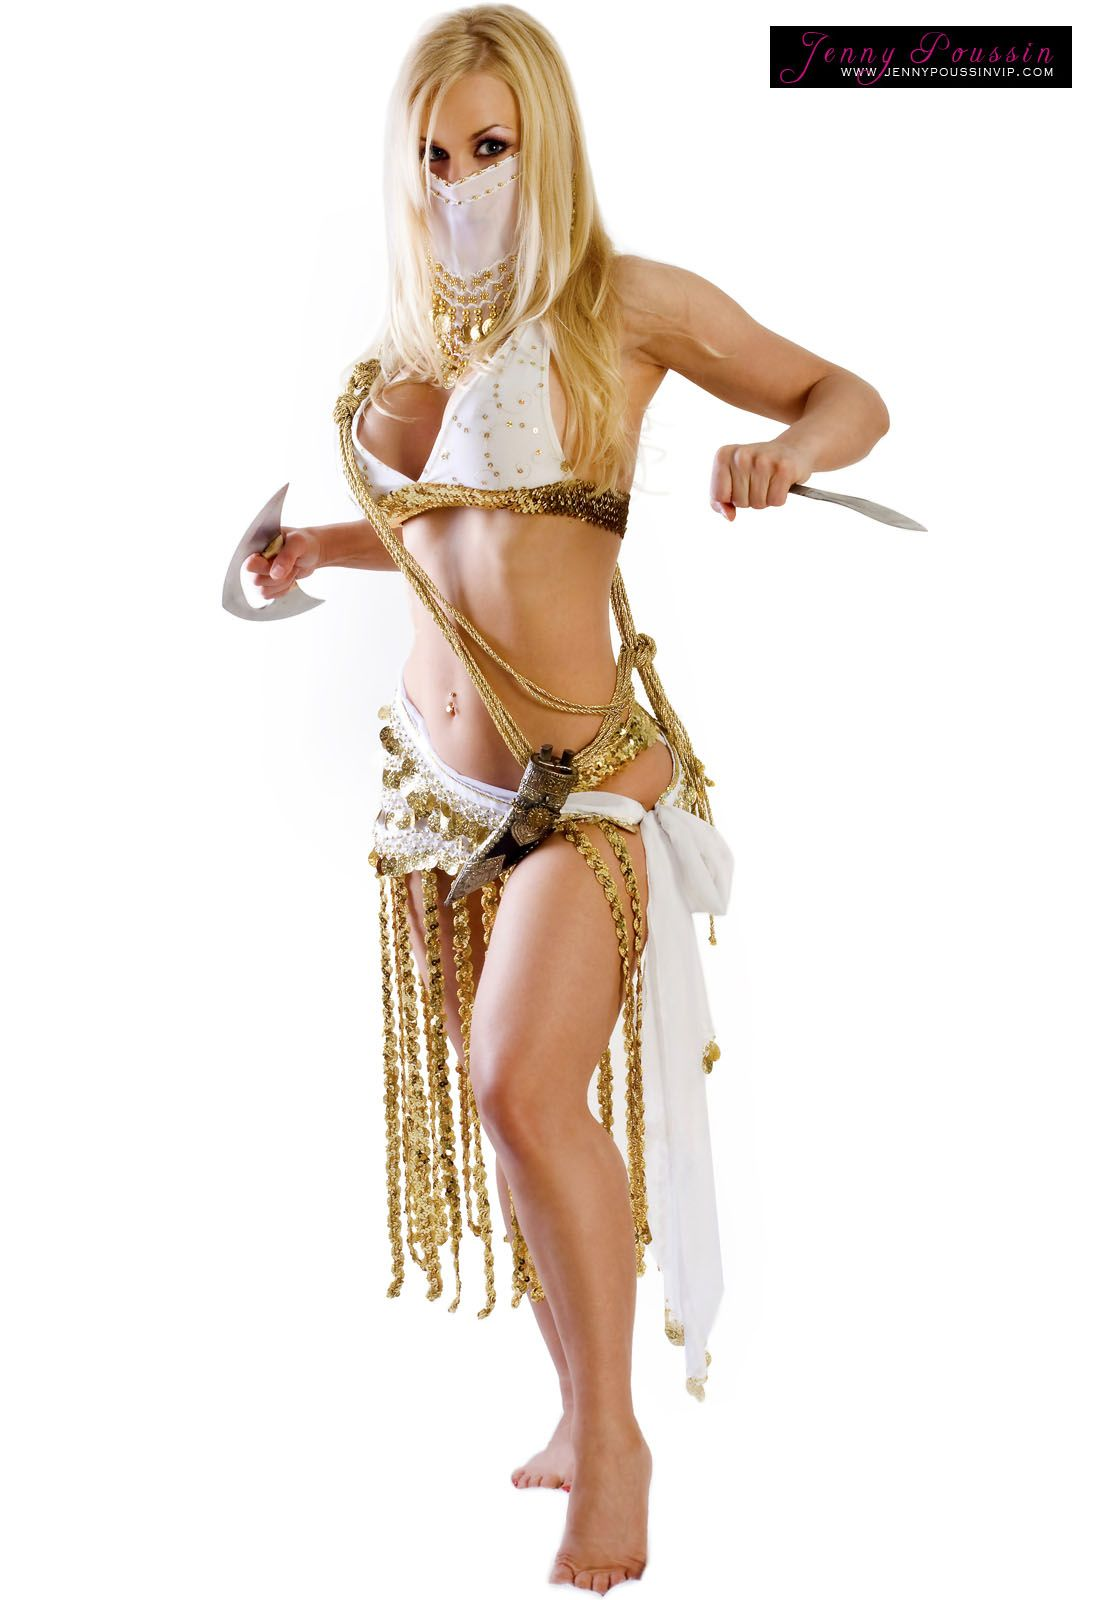 Jenny Poussin haha yeah just great | Medieval & Fantasy Stuff | Pinte ...